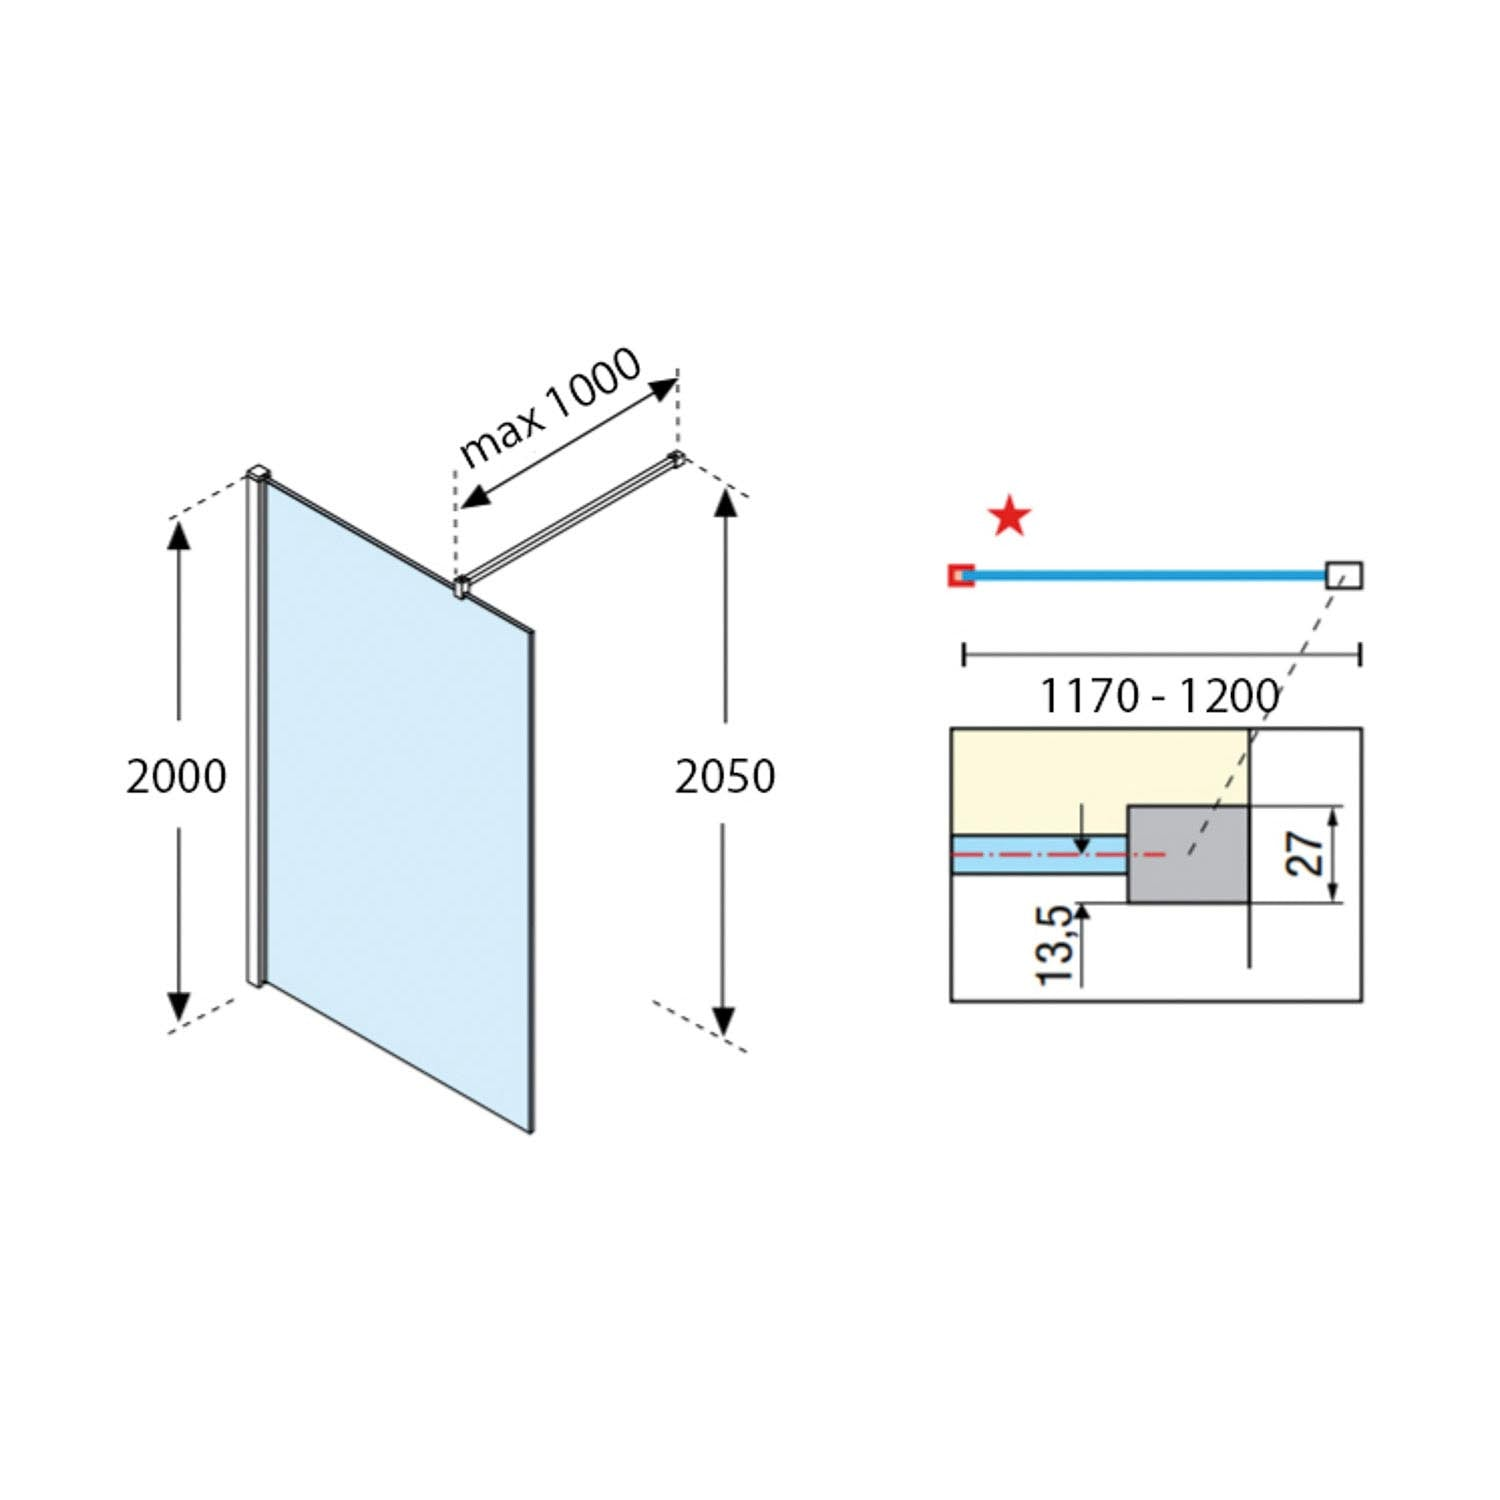 1170-1200mm Ergo Wet Room Screen Clear Glass with a chrome finish dimensional drawing